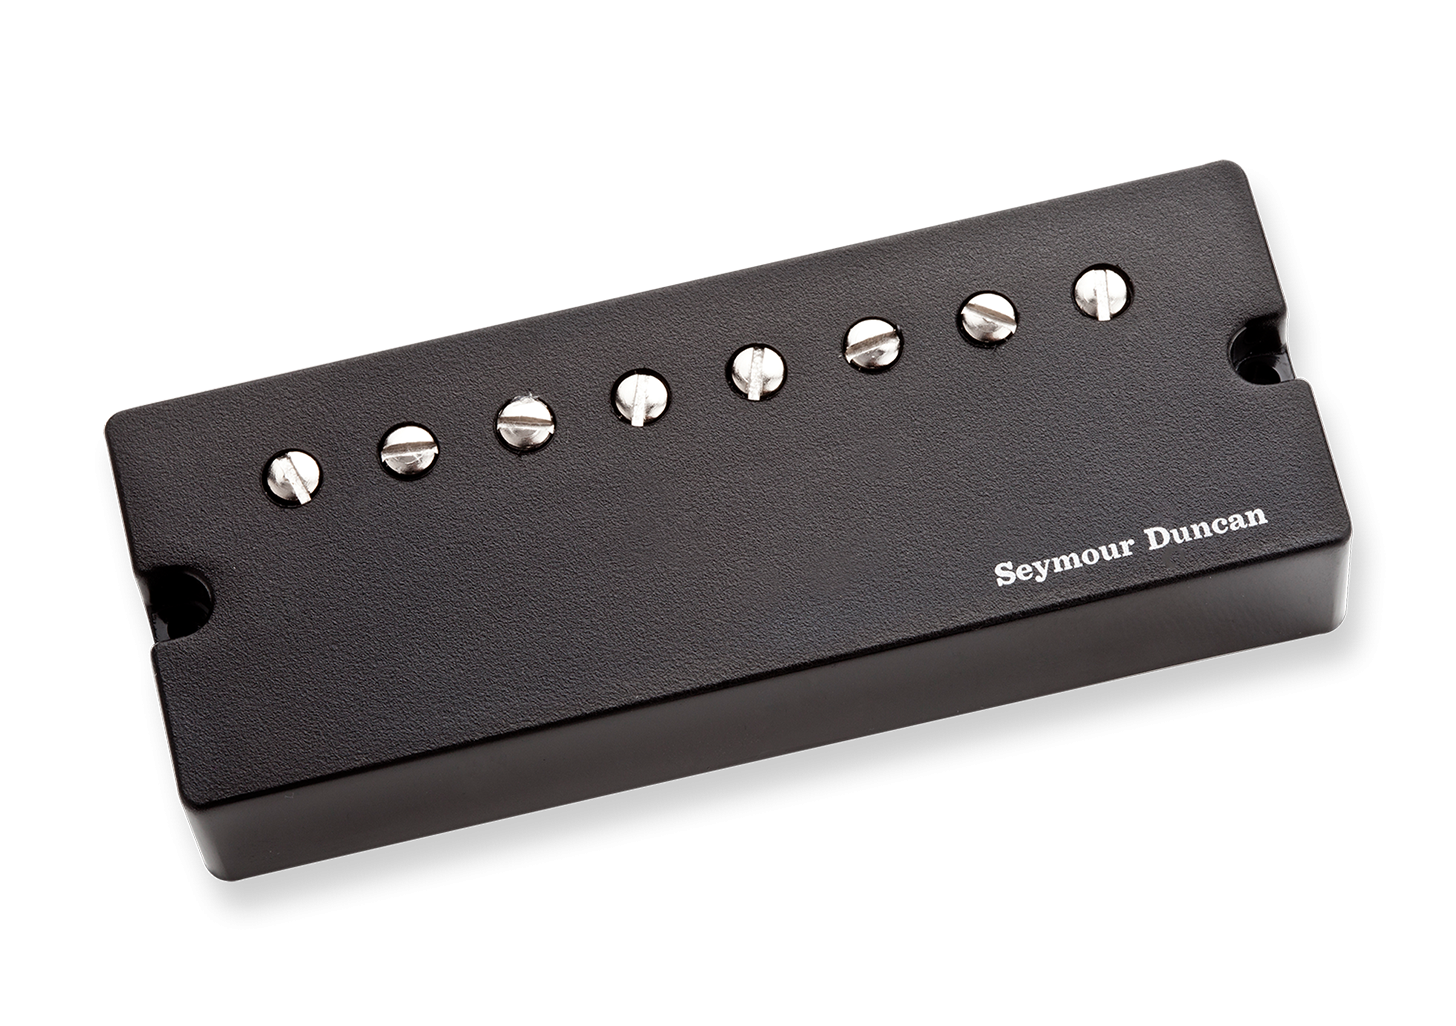 Seymour Duncan Sentient Humbucker - 8 String Neck Active Mount